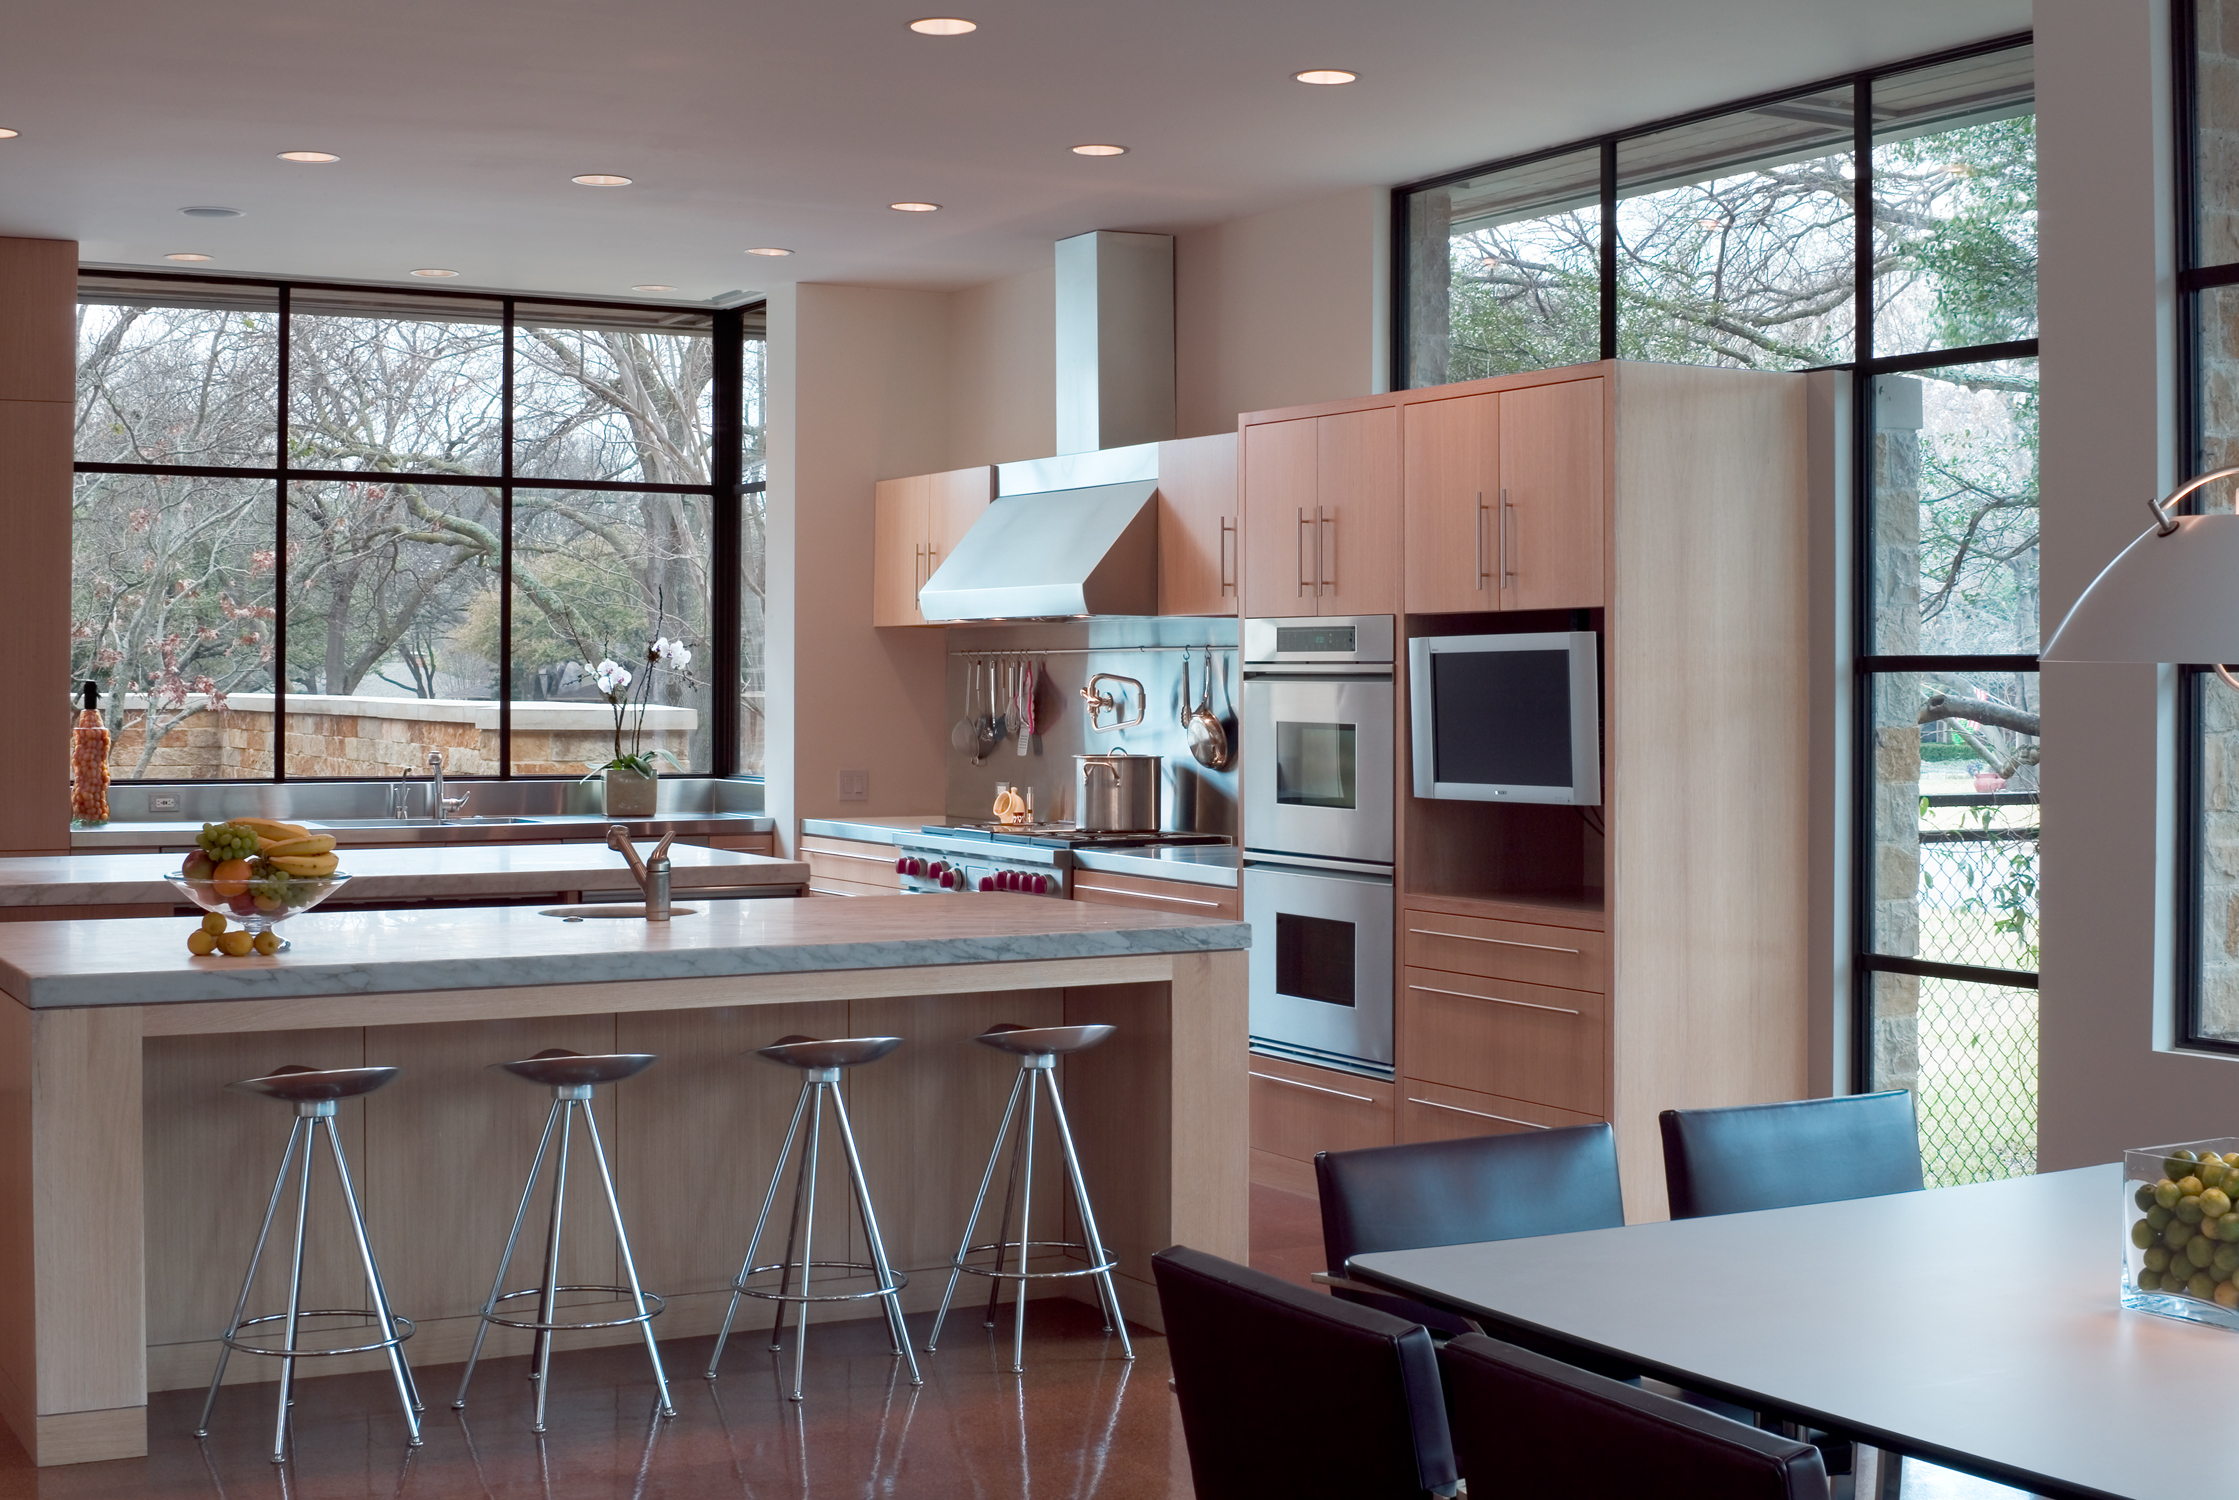 Top 10 modern kitchen design trends life of an architect - Modern contemporary kitchen designs ...